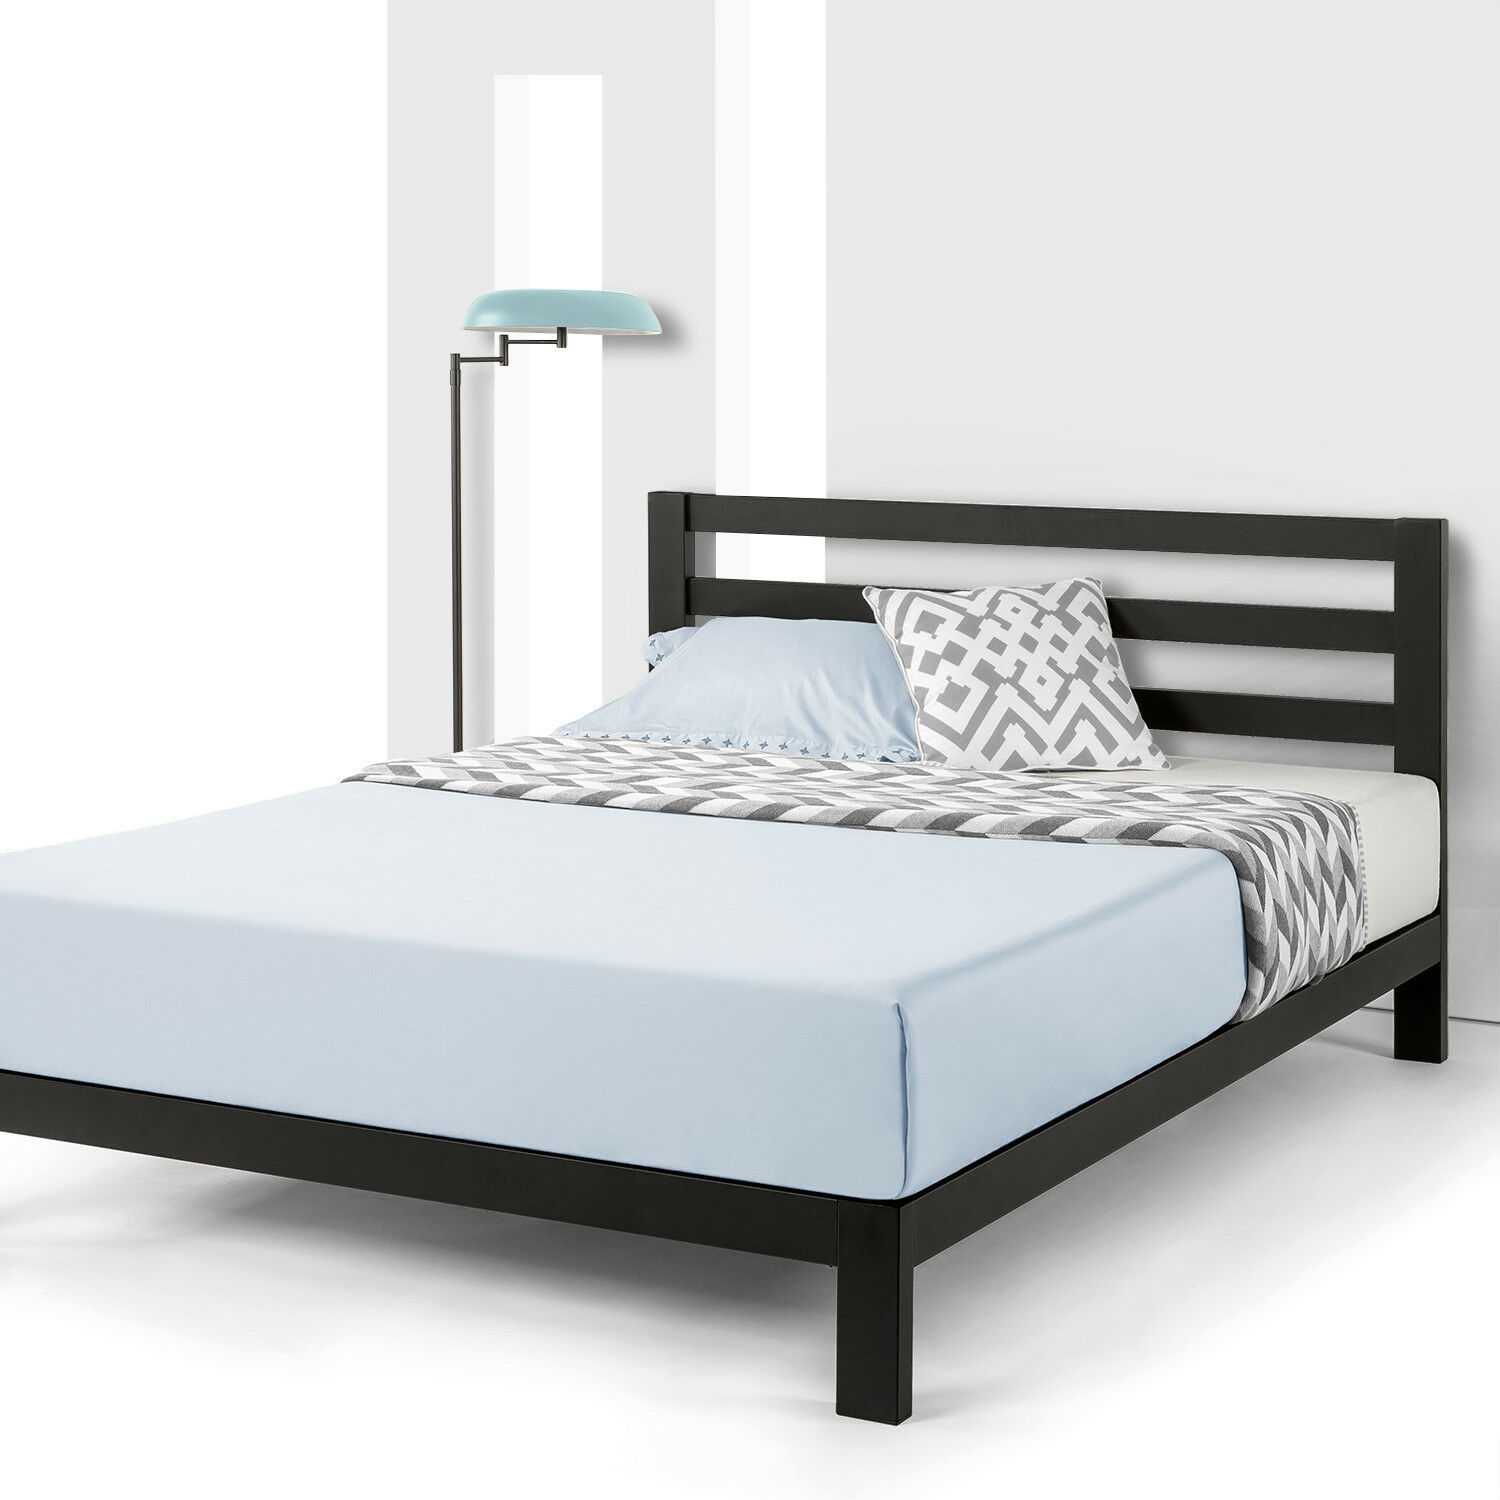 10'' EXTRA STURDY Heavy Duty Metal Platform Bed with Wooden